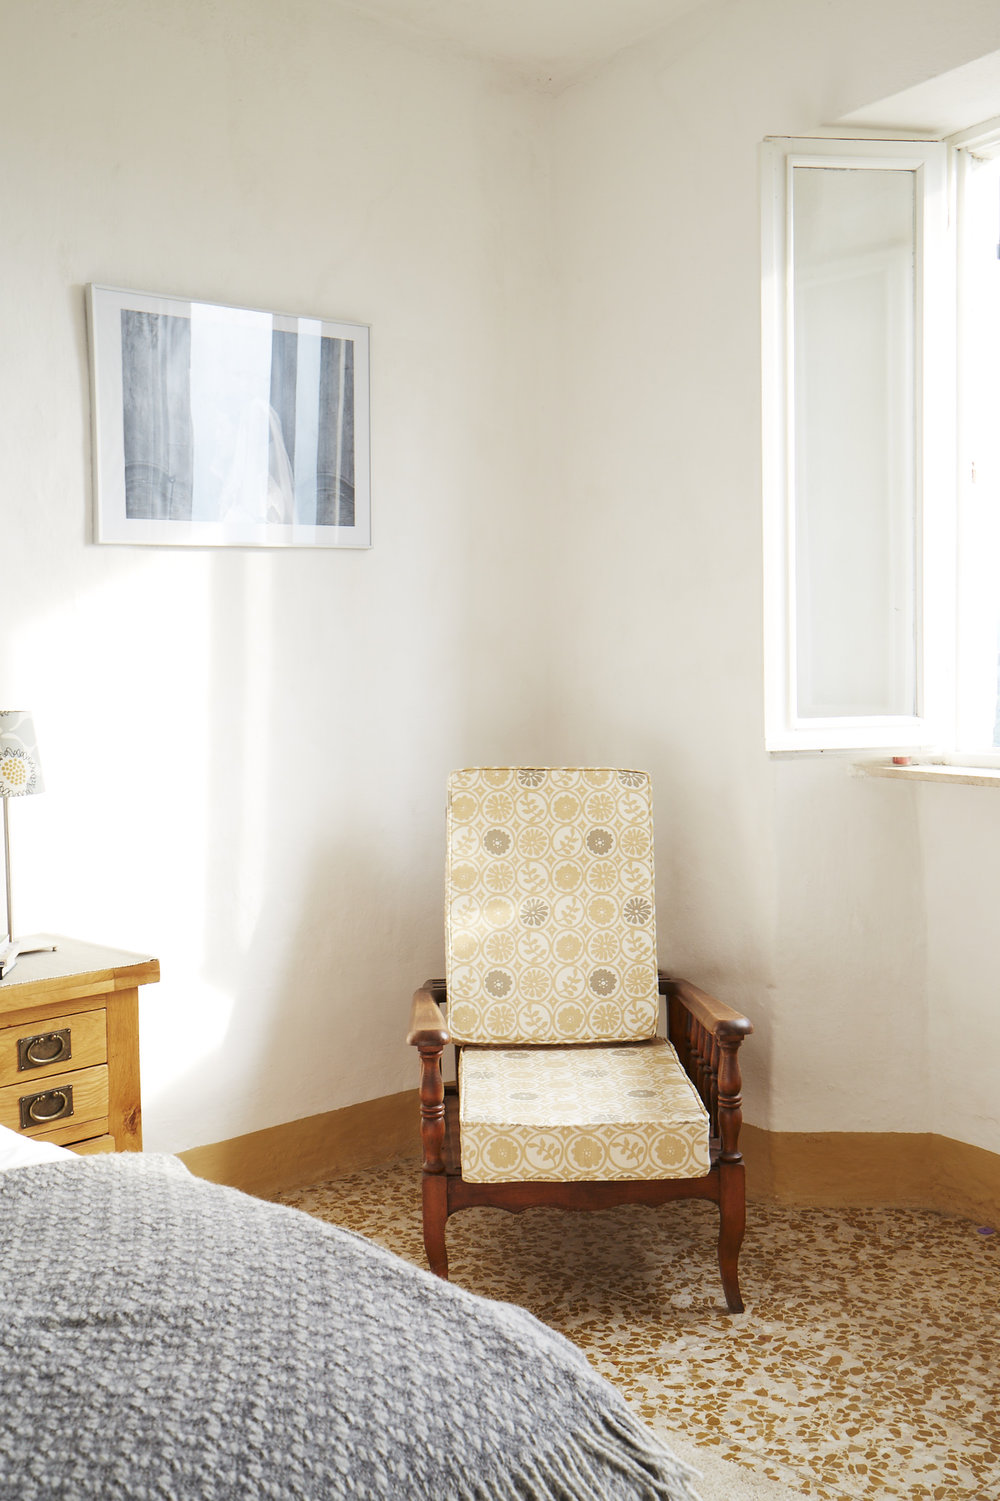 Bedrooms - In total there are 4 double rooms (3 upstairs, 1 down), 2 twins and a single attic room. Ideal for large families of groups of friends. (max. 12 people)